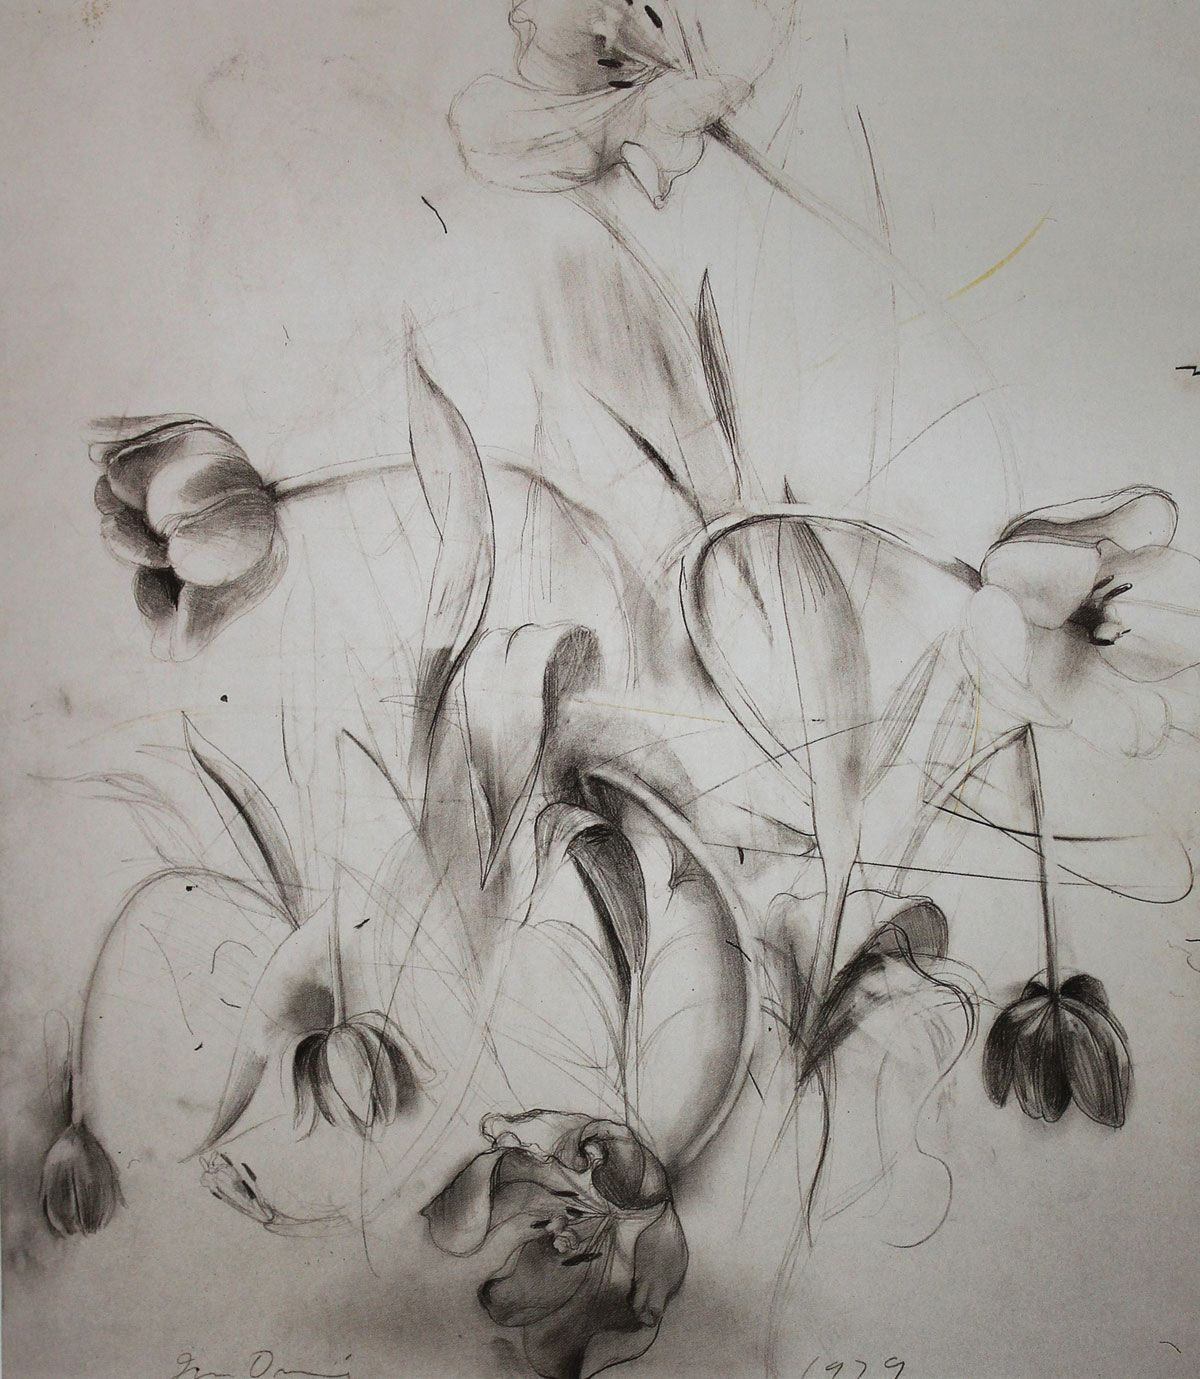 Jim dine i love this jim dine drawing the flowers look like they